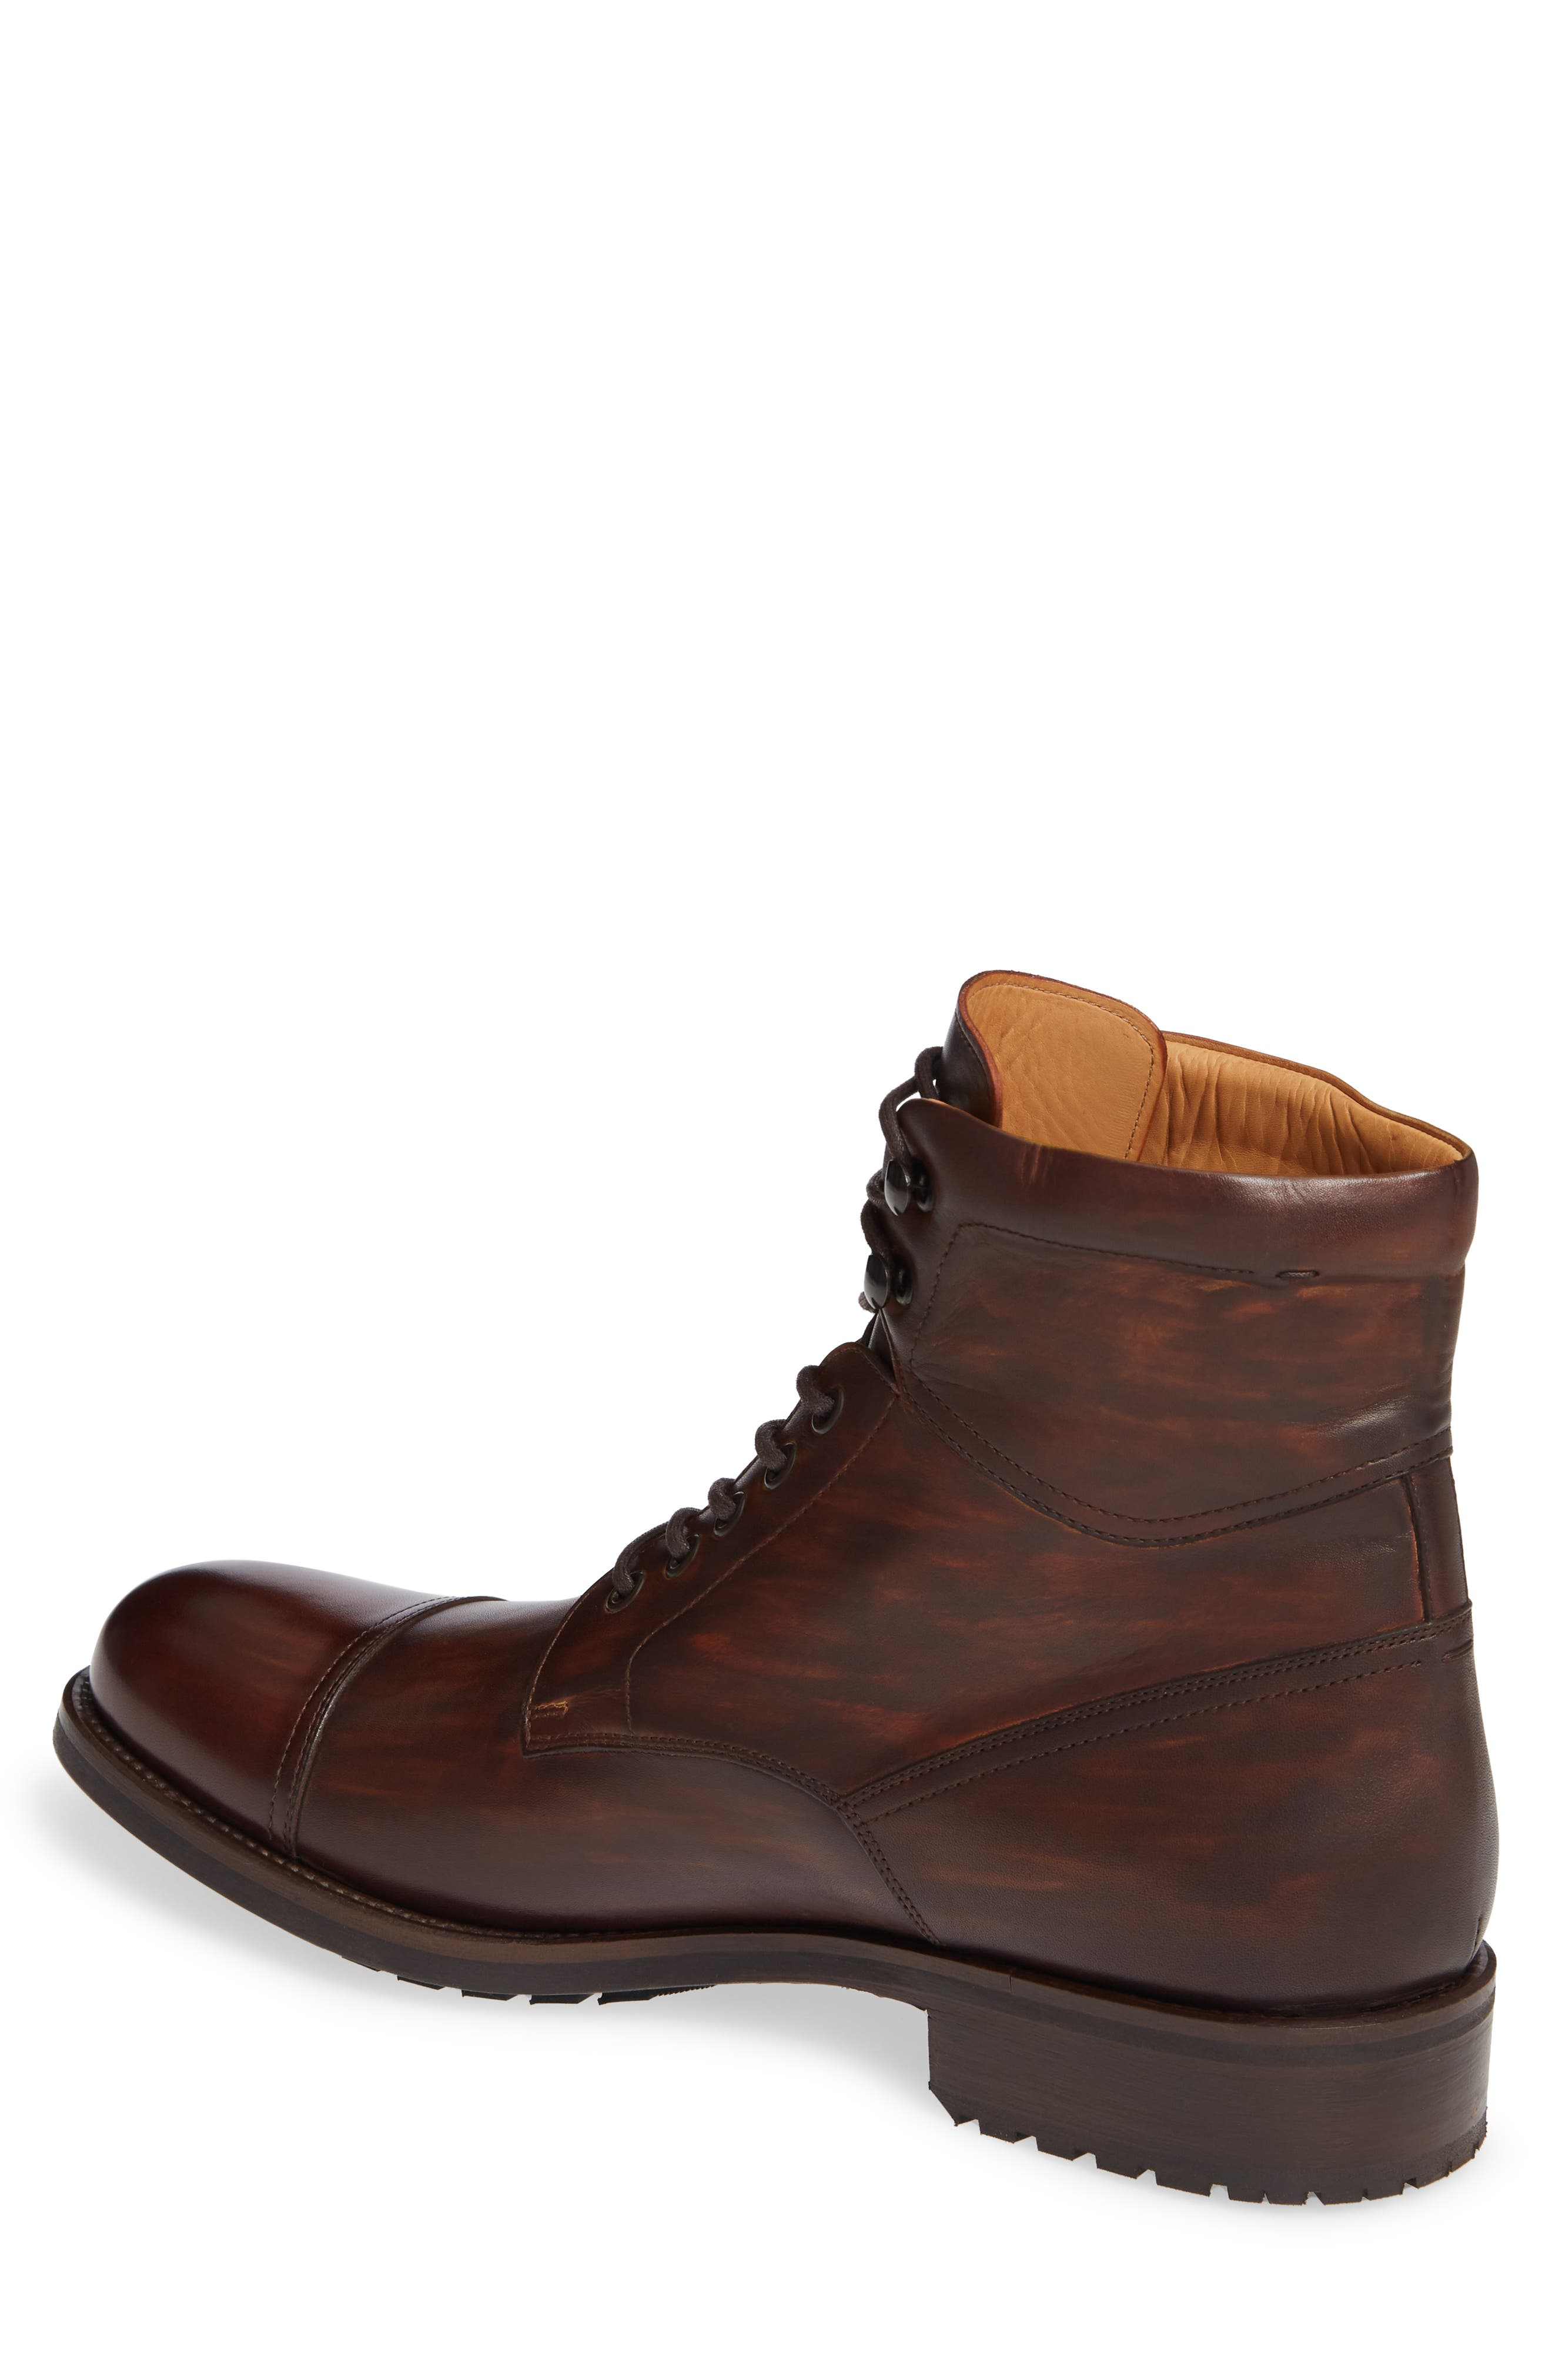 MAGNANNI, Peyton Cap Toe Boot, Alternate thumbnail 2, color, TOBACCO LEATHER